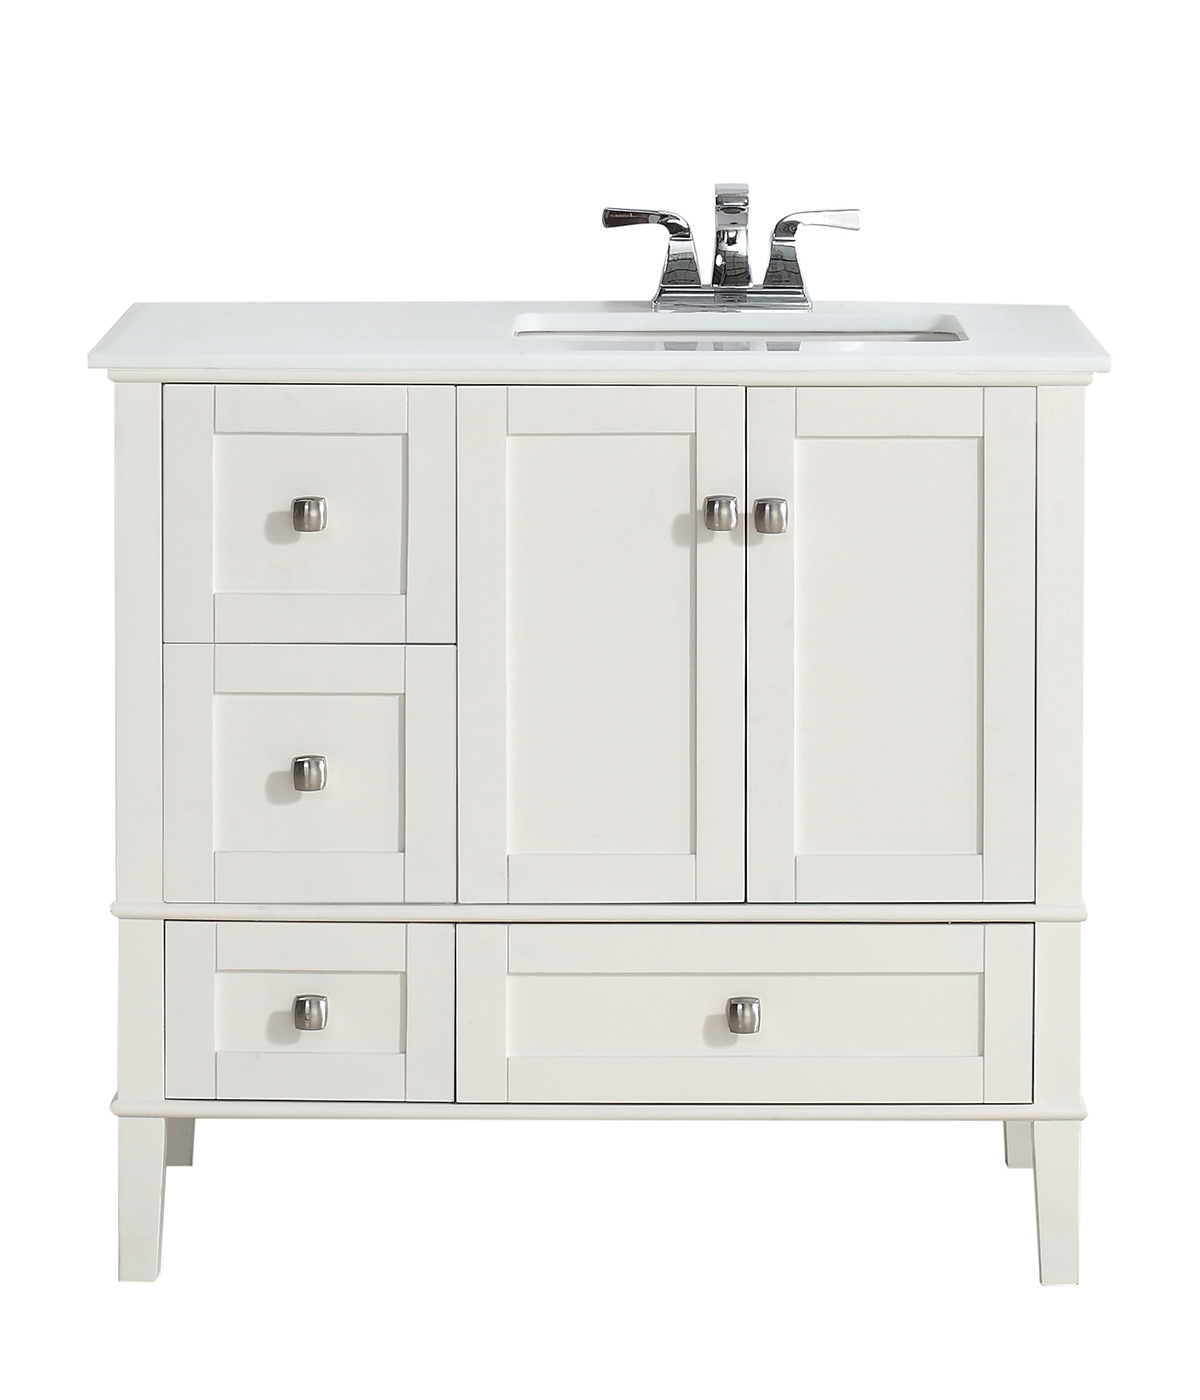 Permalink to Bathroom Vanities With Drawers On Left Side